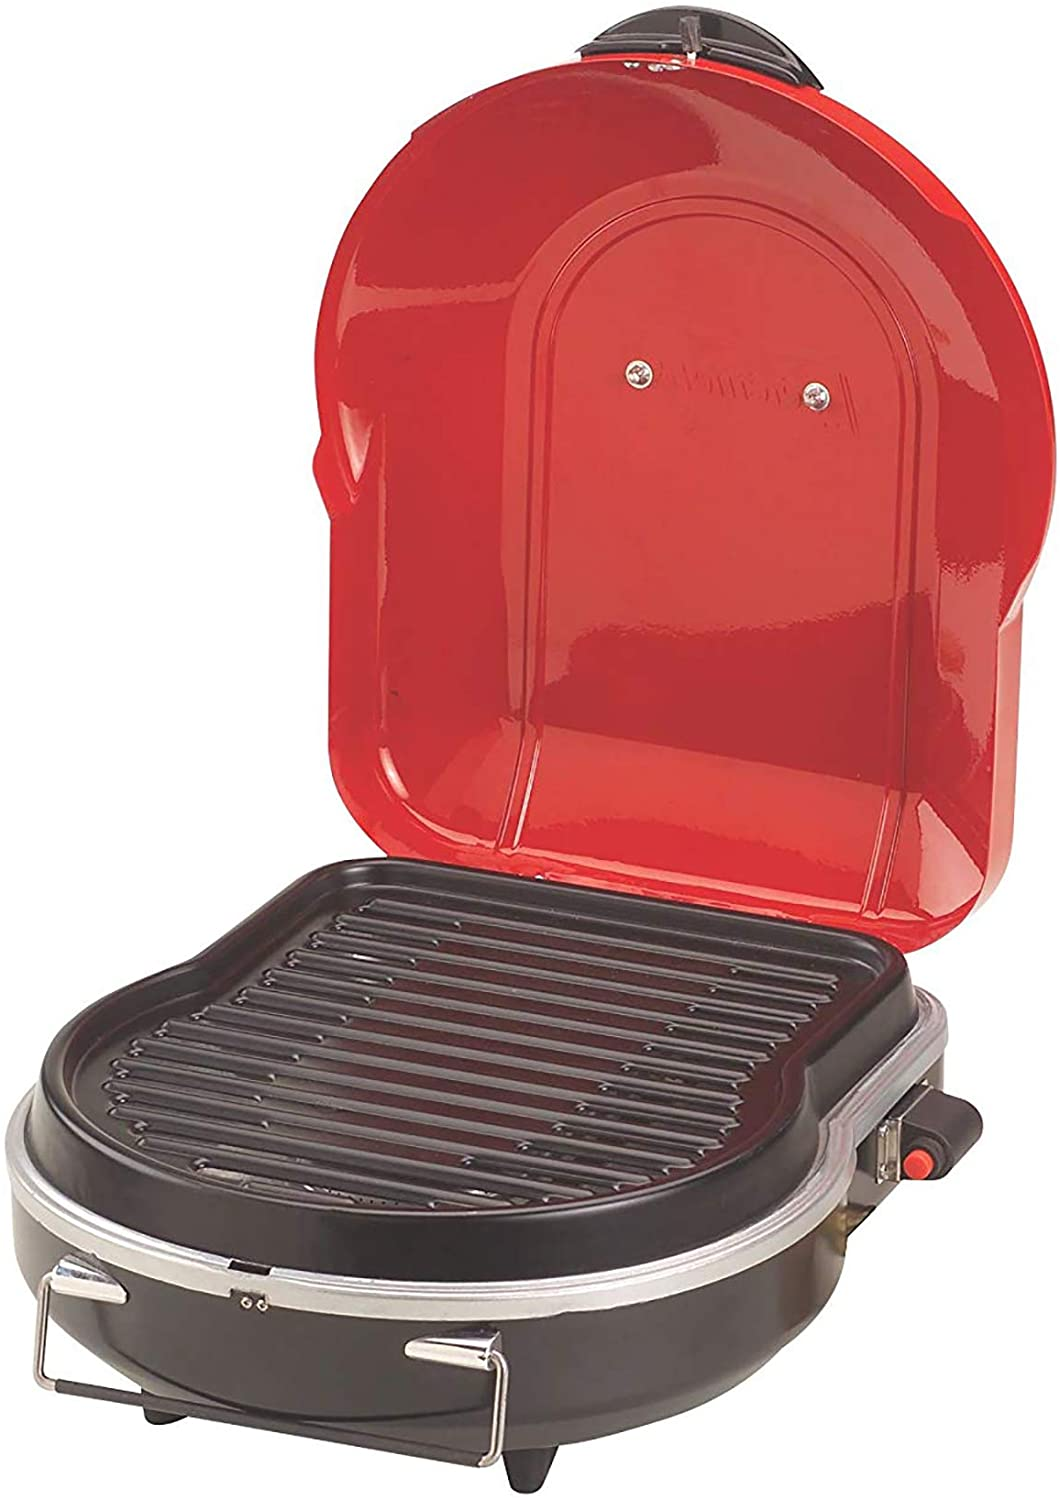 Coleman Fold N Go + Propane Grill review